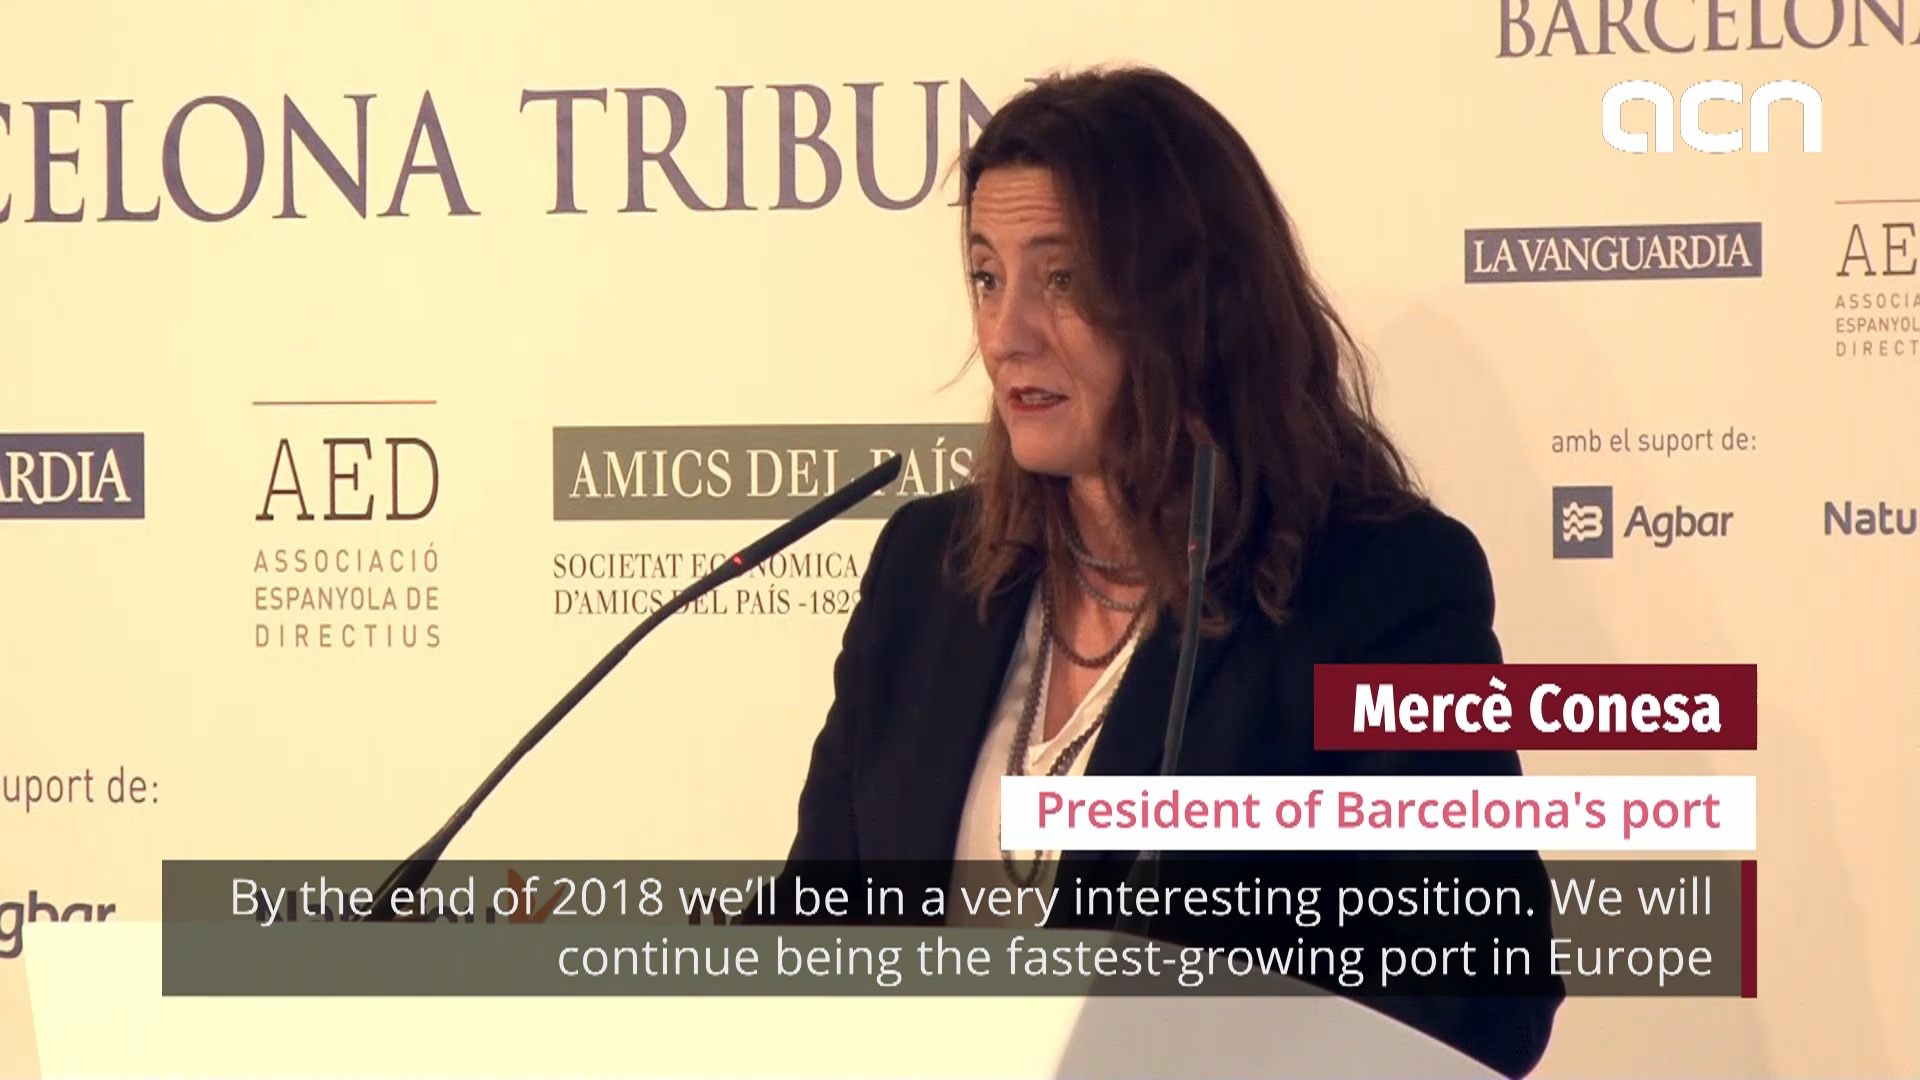 Barcelona remains as fastest-growing port in Europe, says president